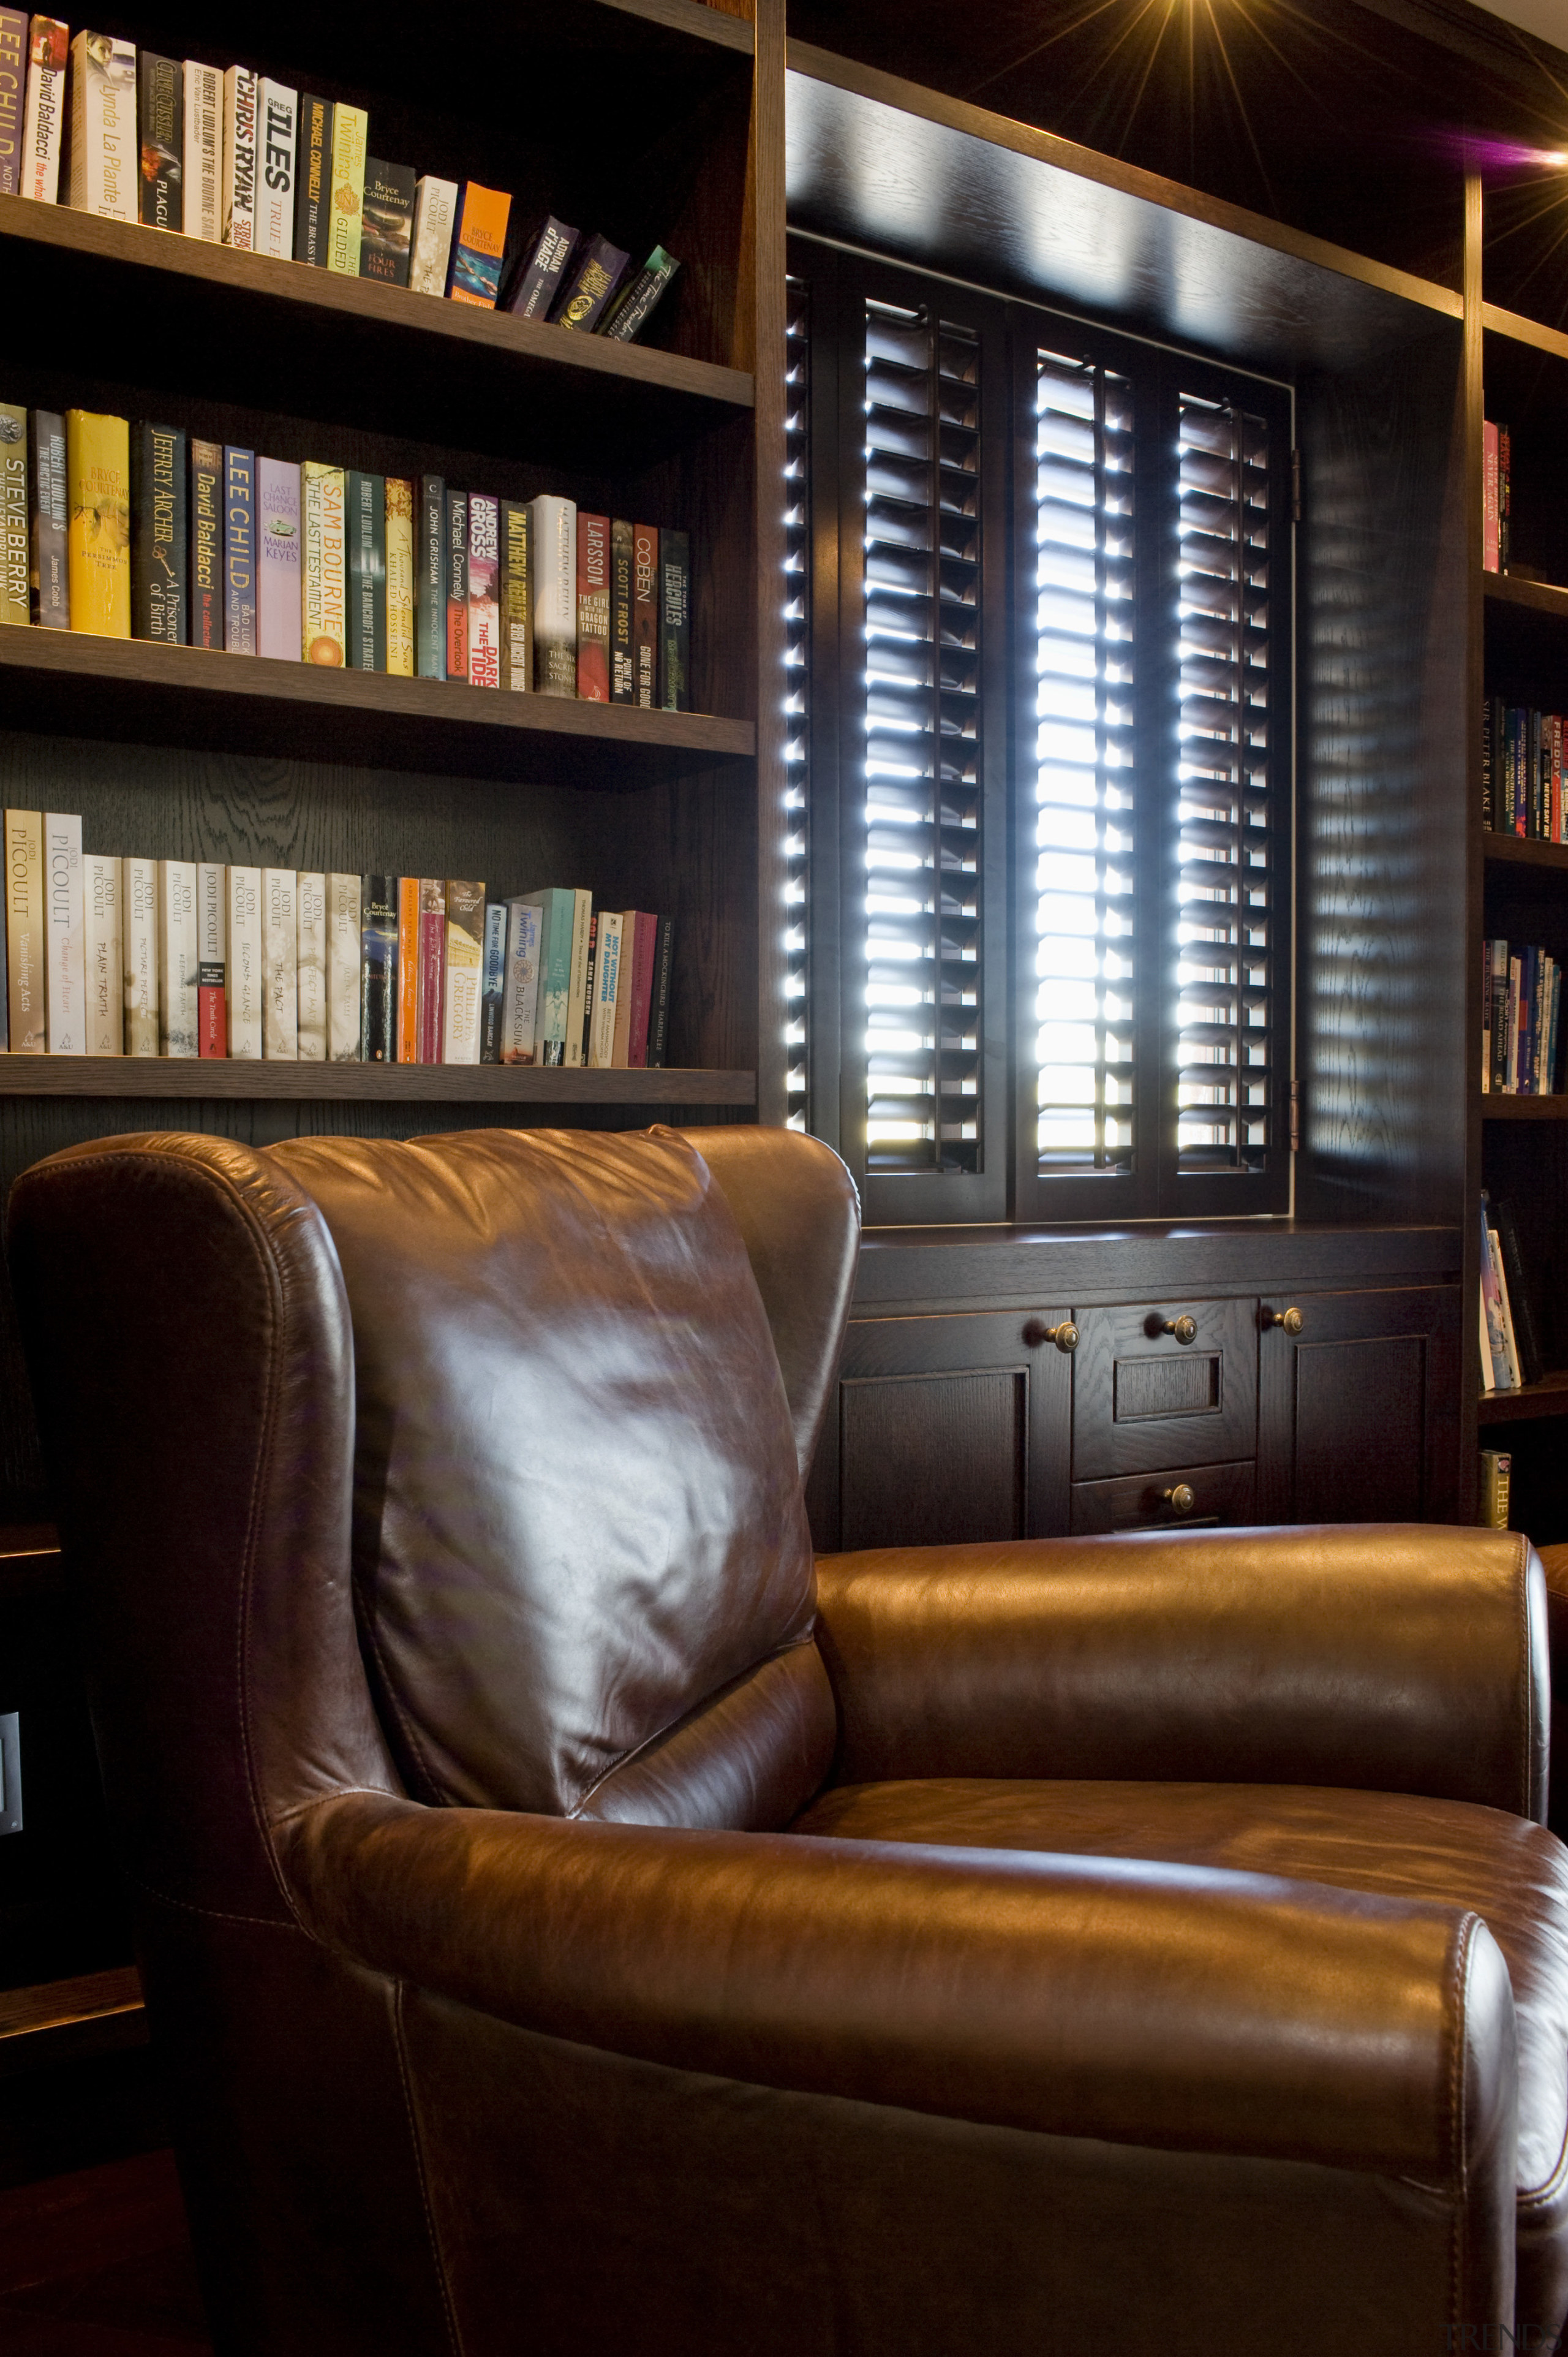 Image of dark stained library shelving and cabinetry bookcase, chair, furniture, home, interior design, library, living room, shelving, window, wood, black